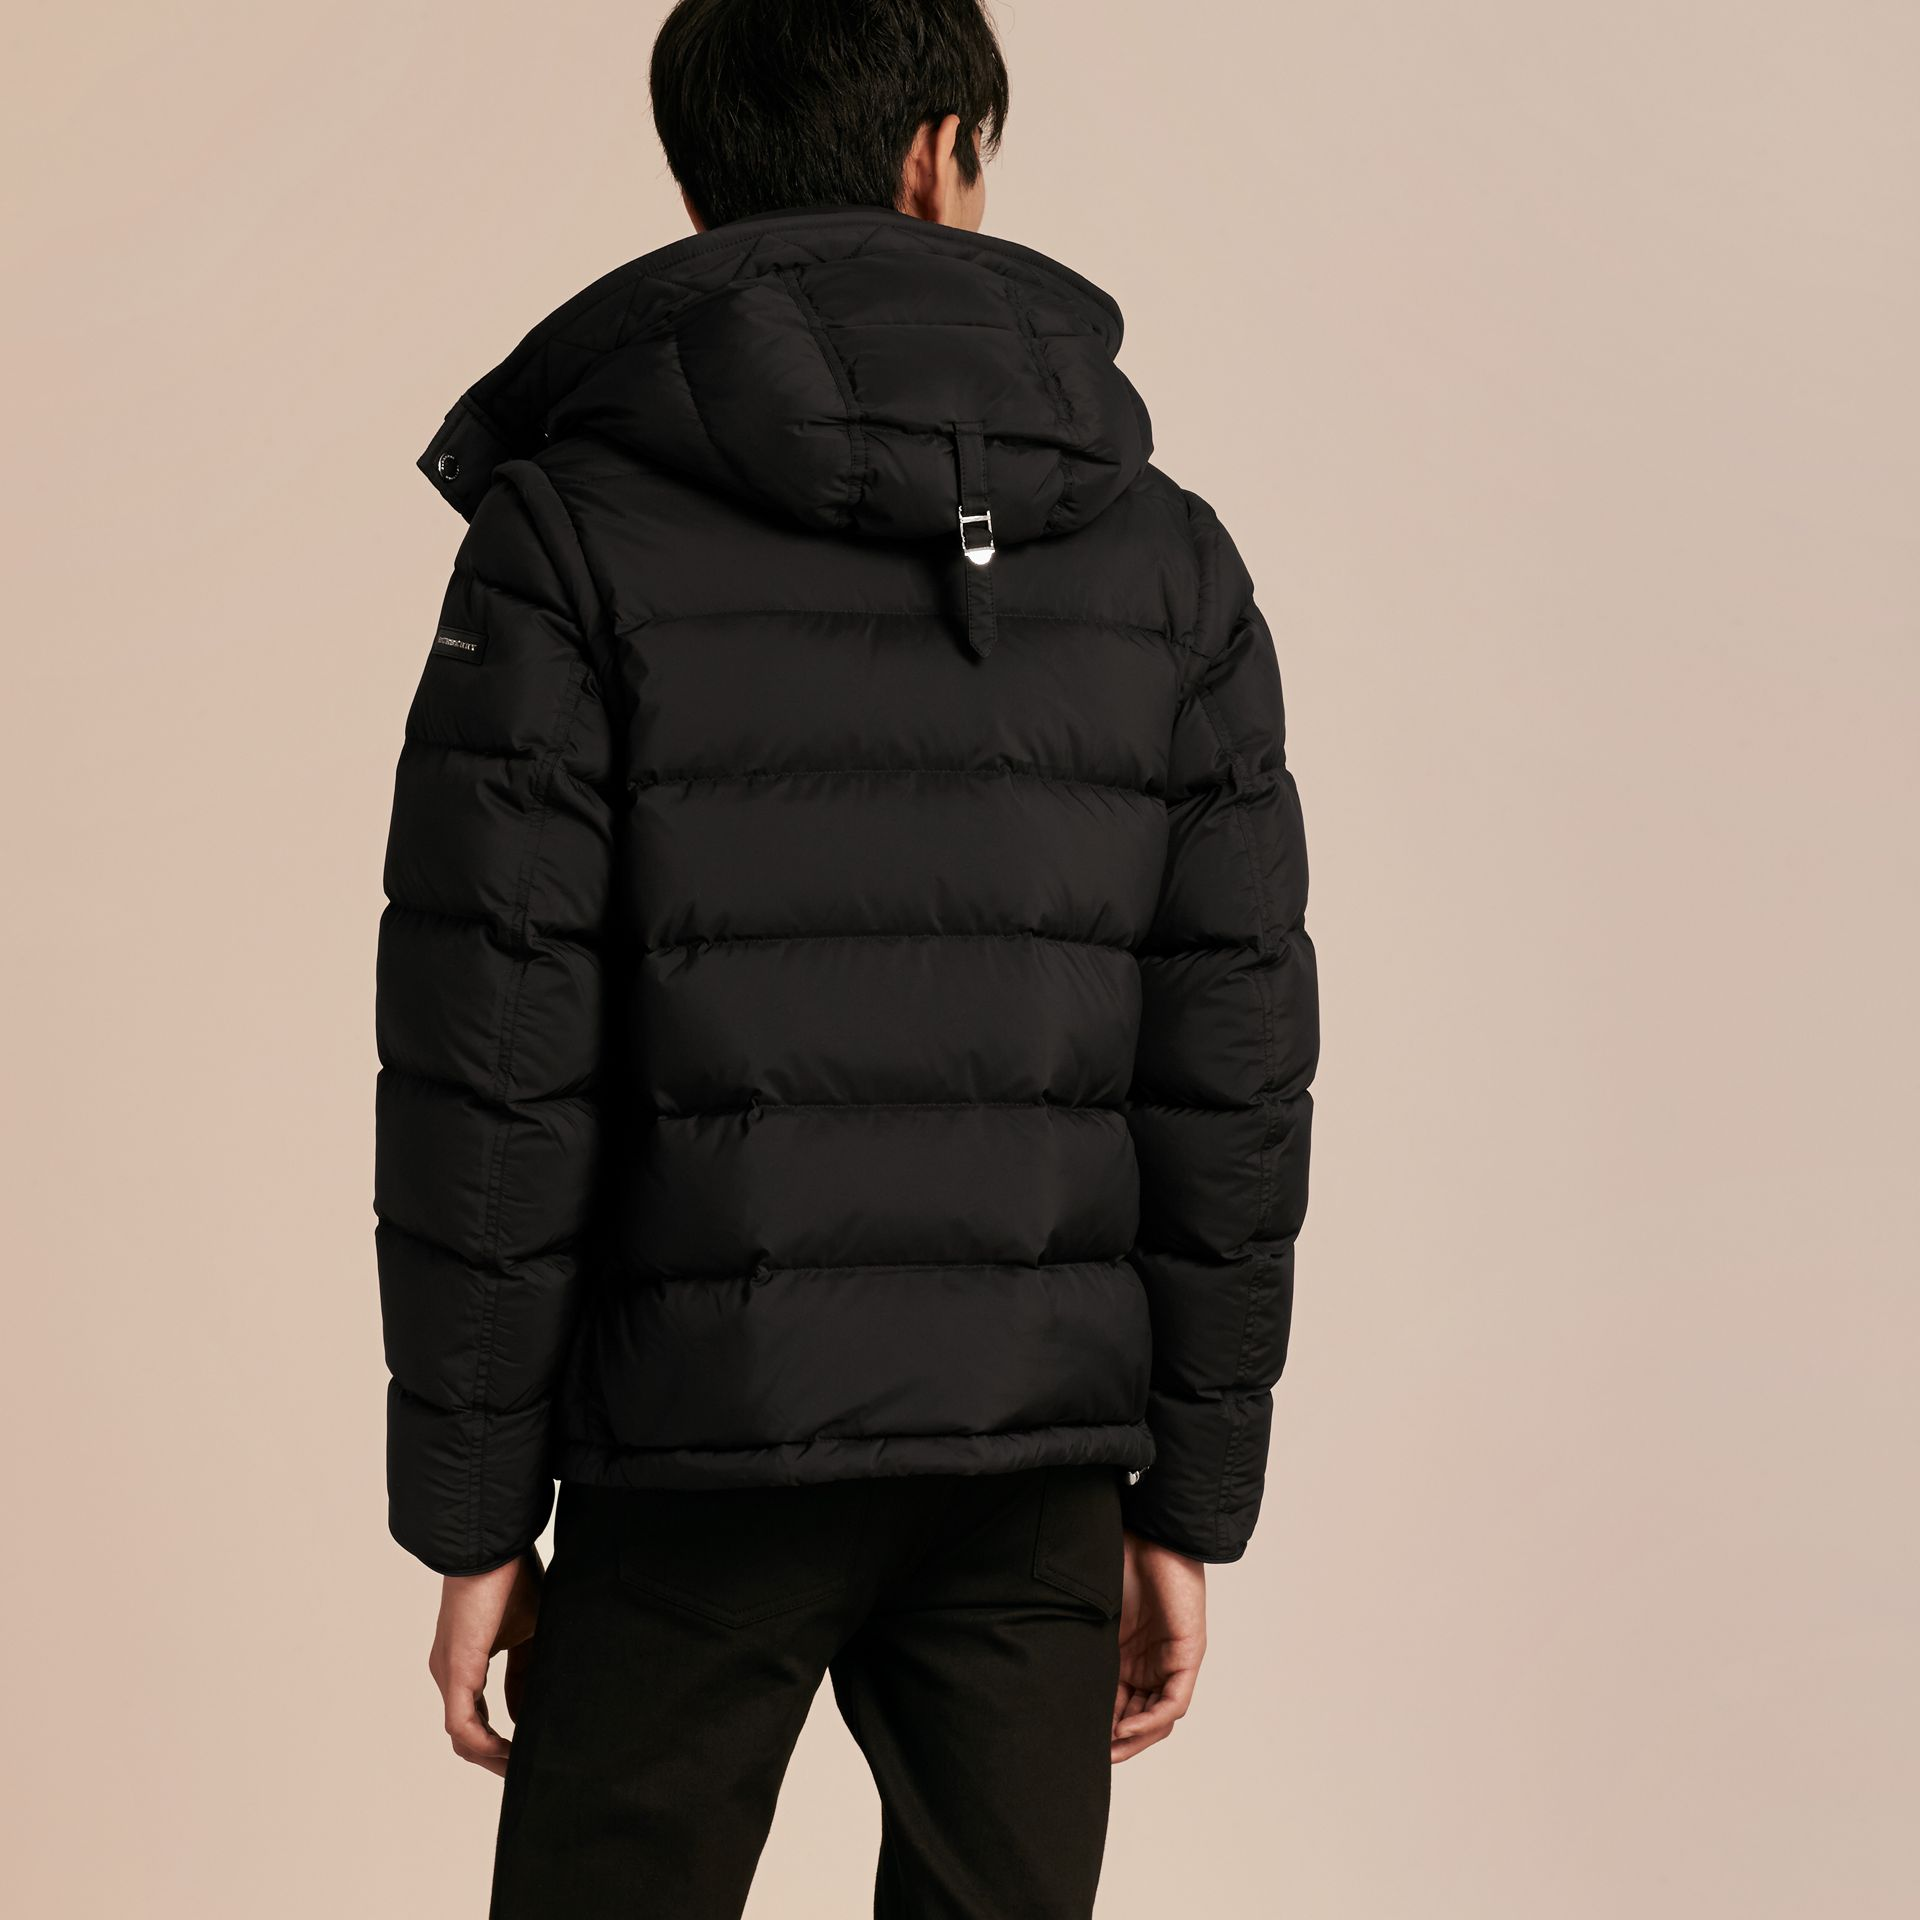 Down-filled Hooded Jacket with Detachable Sleeves in Black - gallery image 3